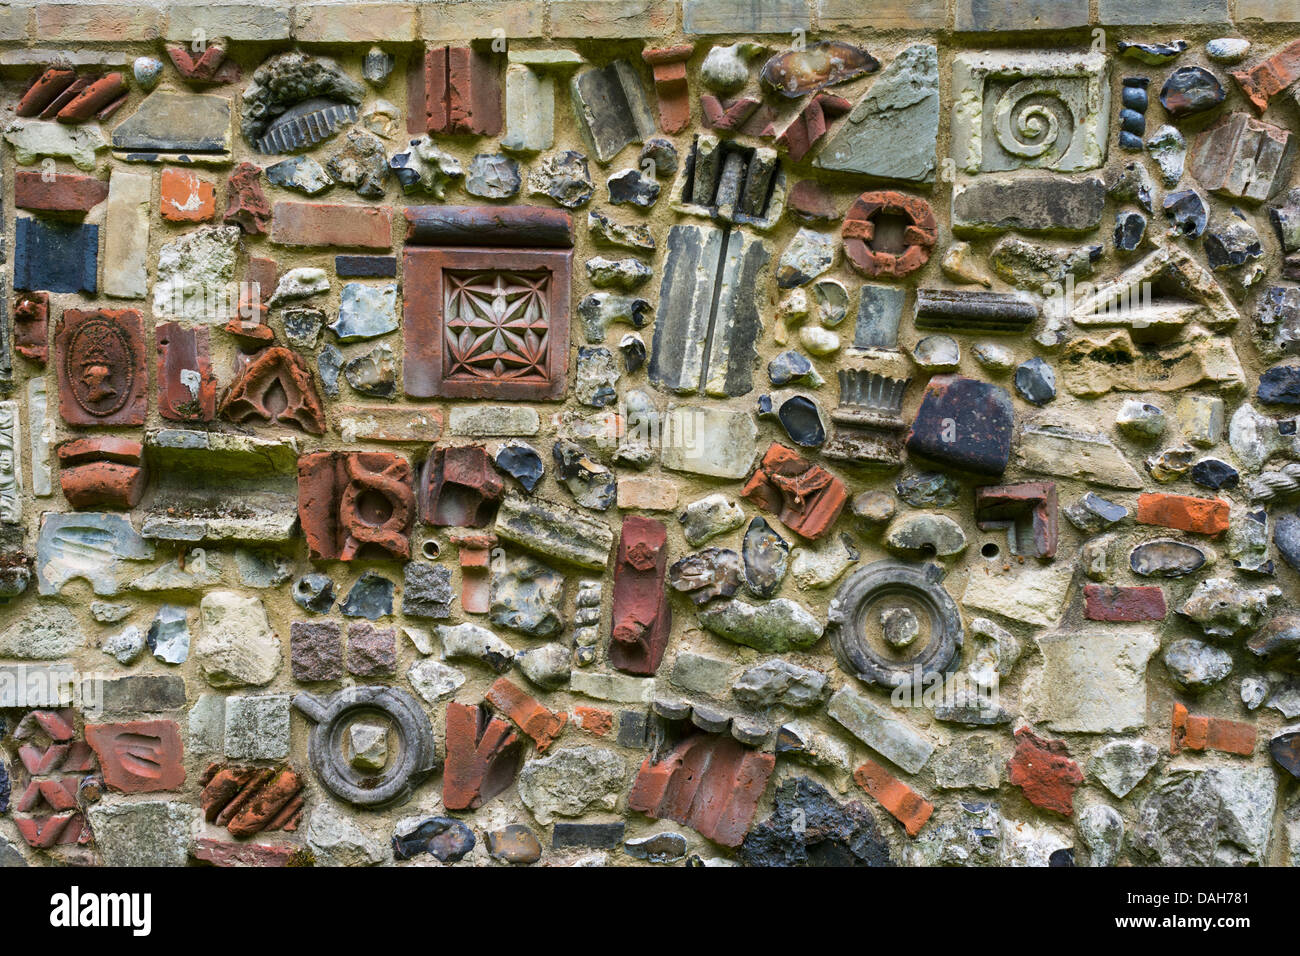 View of the Plantation Garden Norwich, showing the wall constructed from left over bricks. - Stock Image